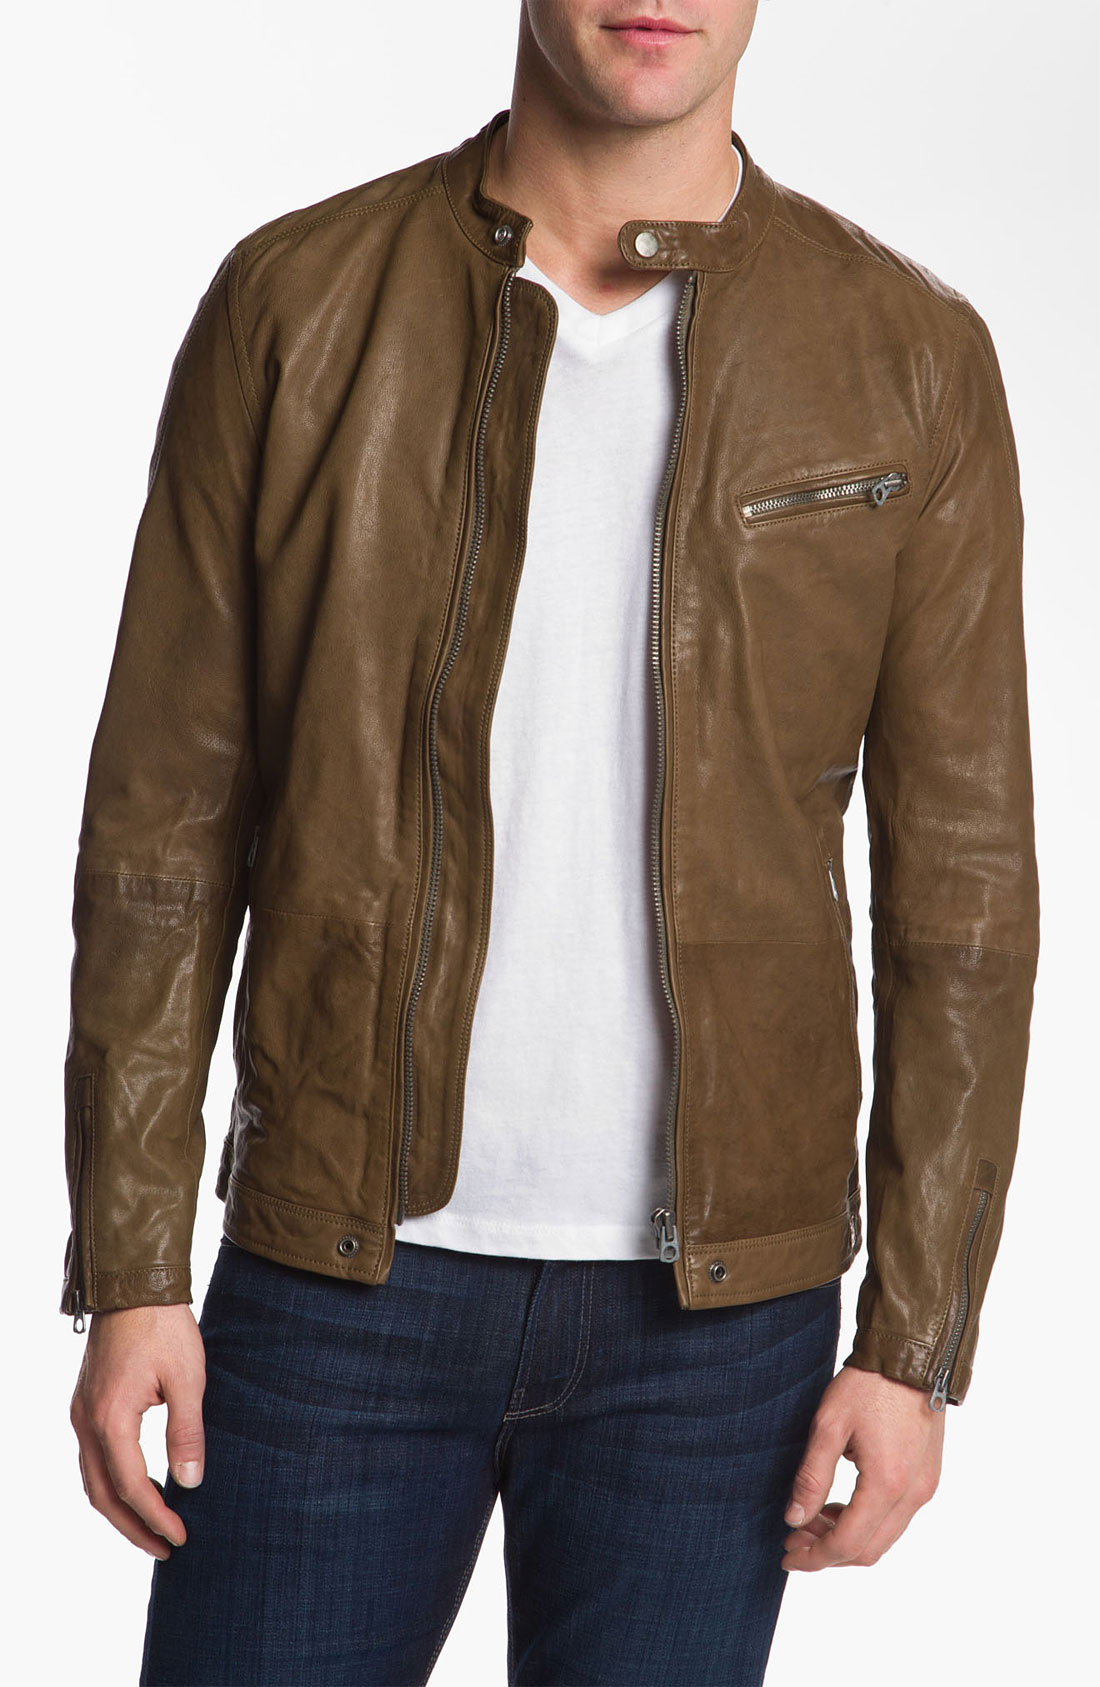 Mens light brown jackets – New Fashion Photo Blog